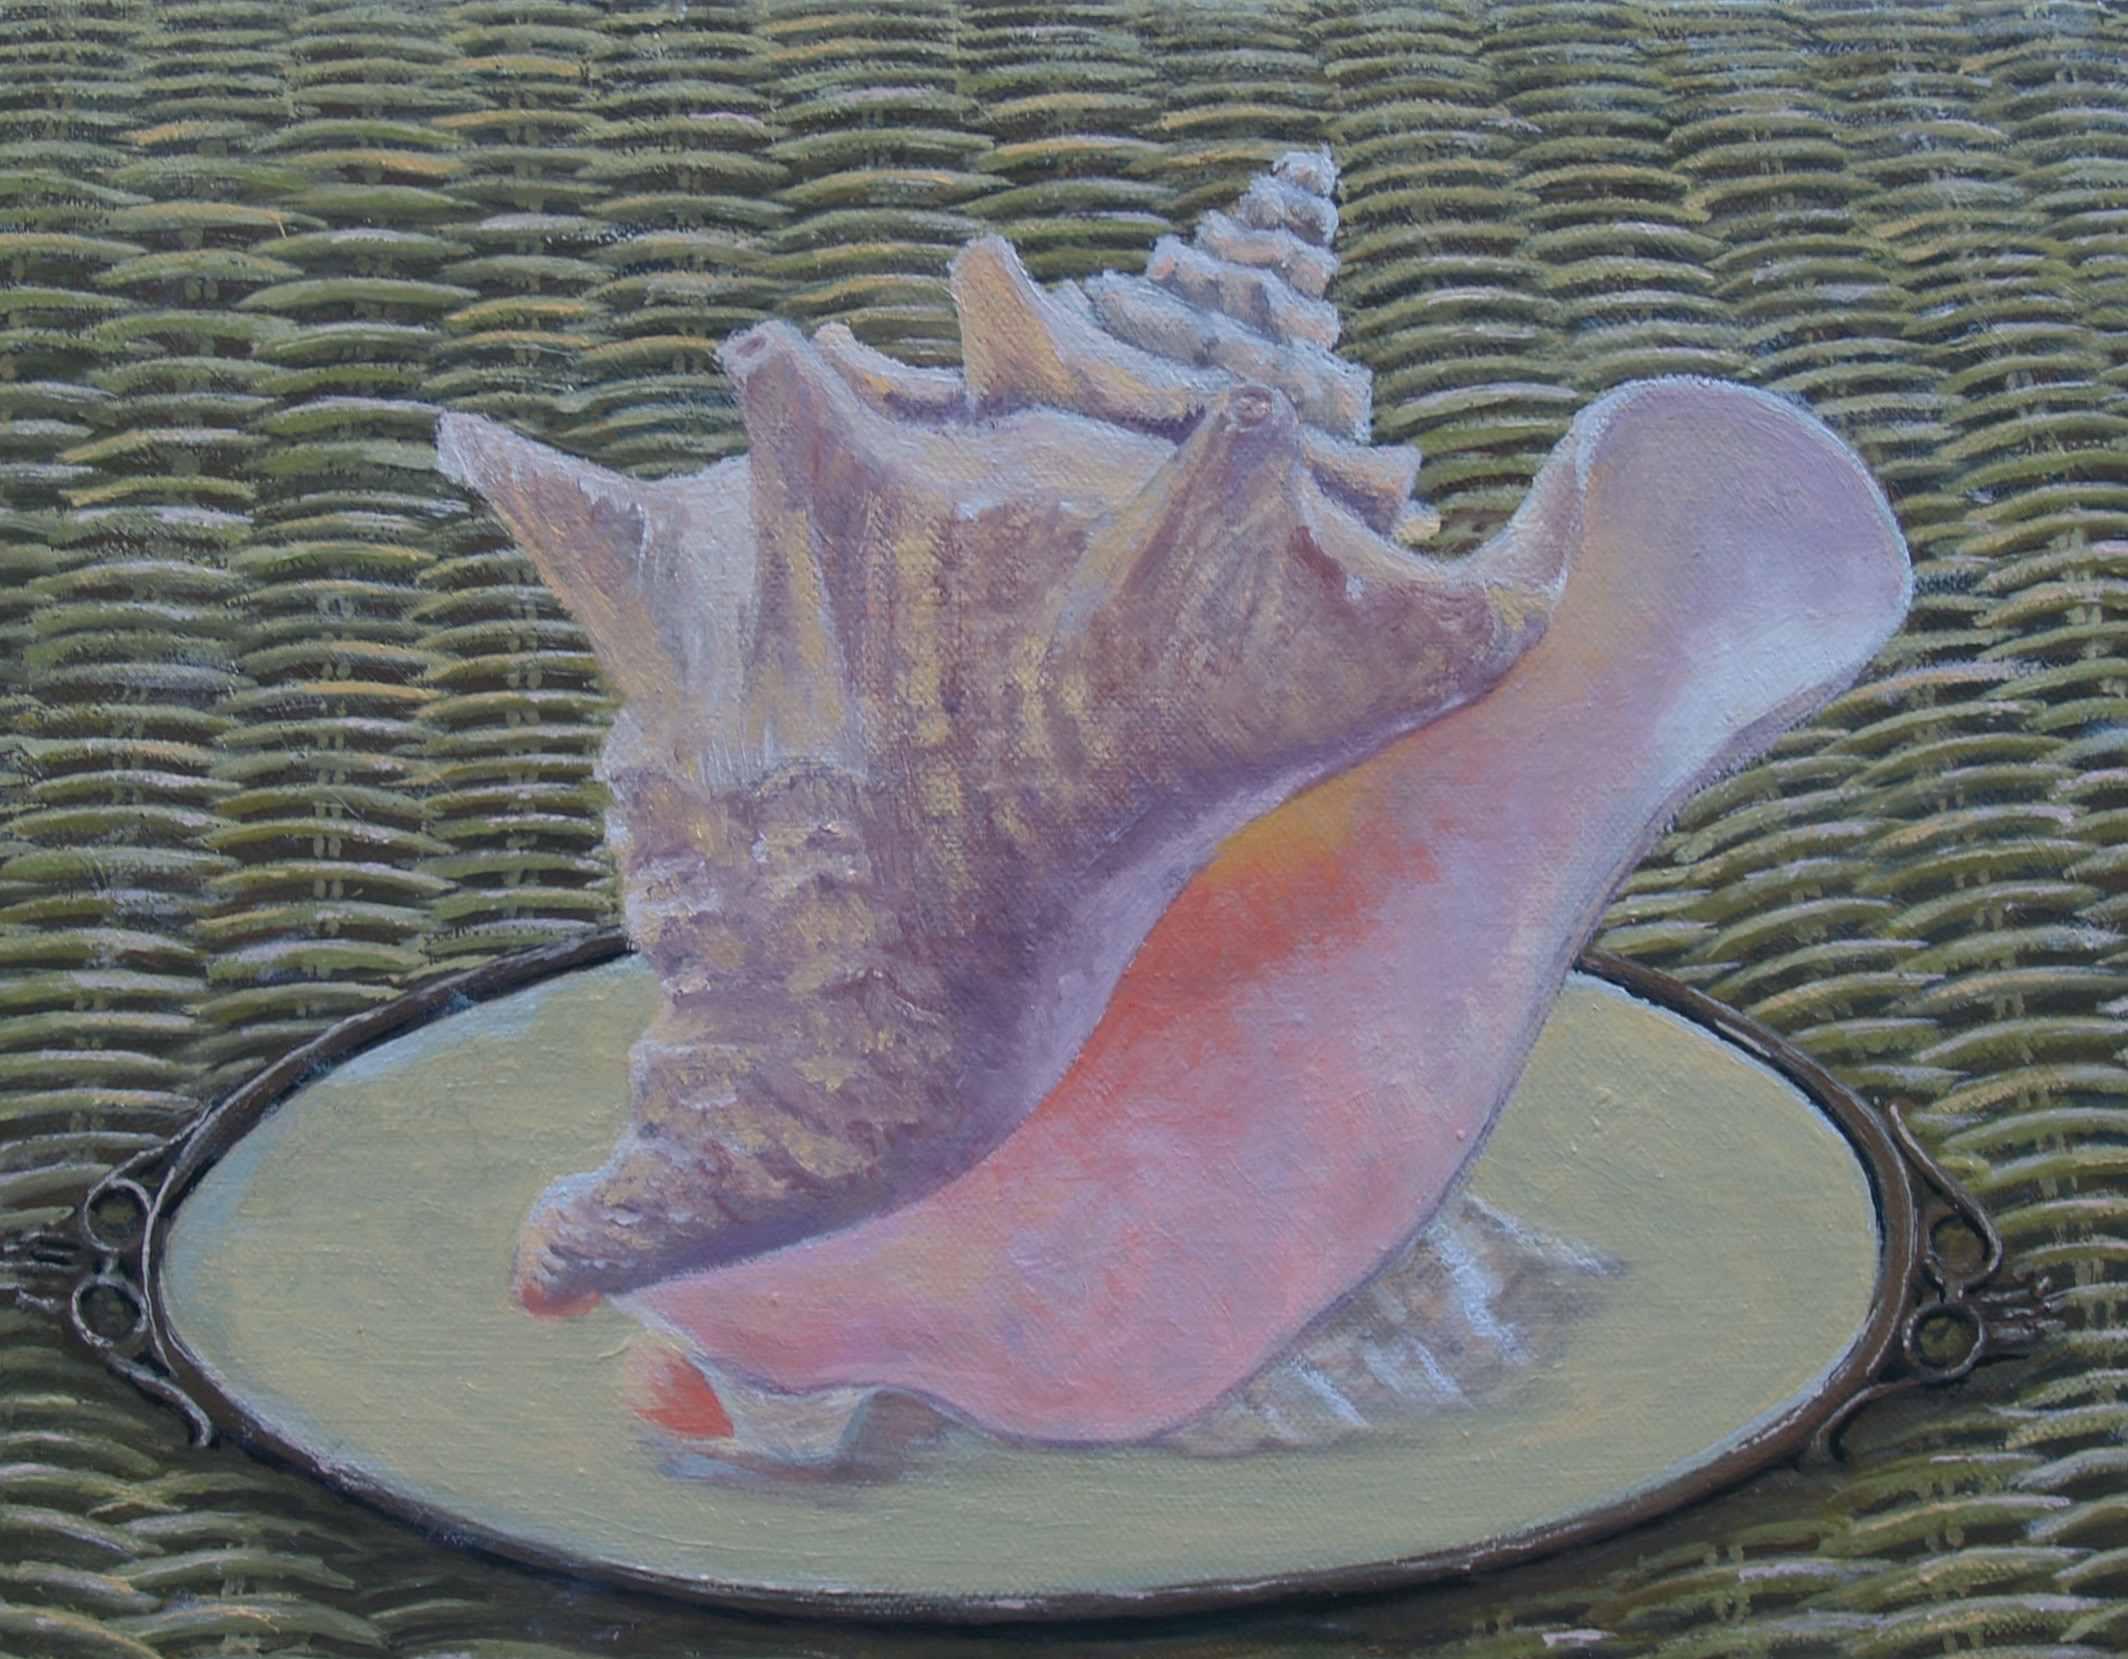 Key West Conch